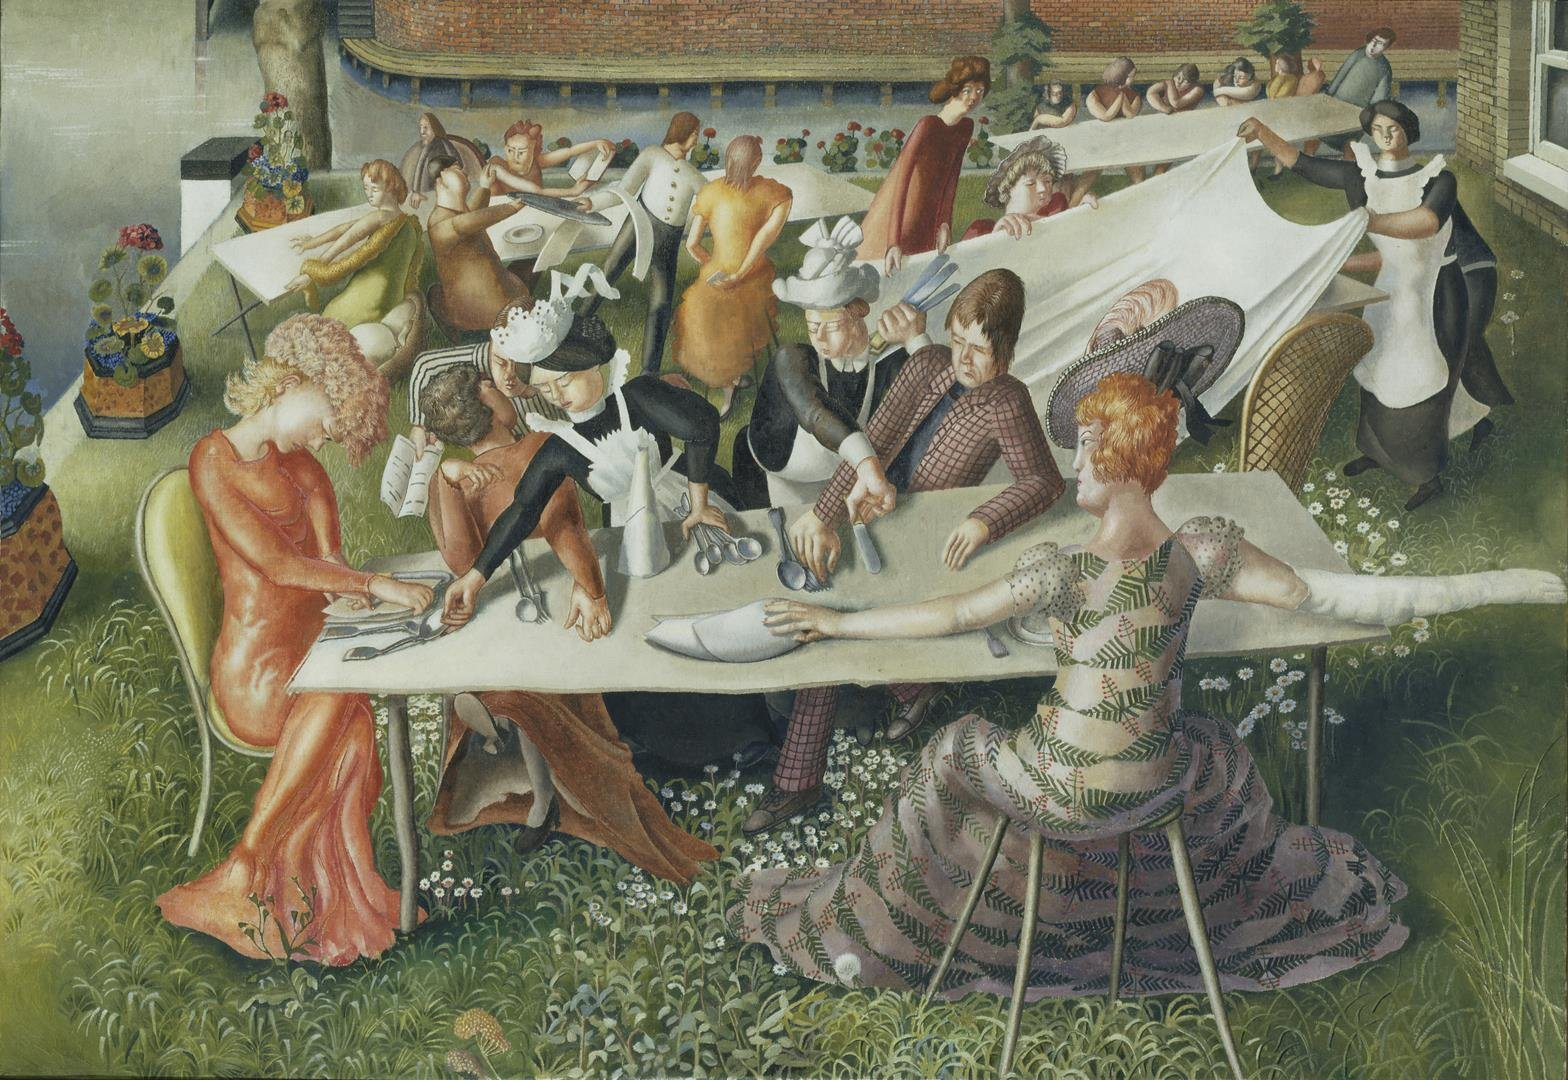 8. Stanley Spencer, Dinner on the Hotel Lawn, 1956-7, oil on canvas, 94.9 x135.9 cm - LR.jpg